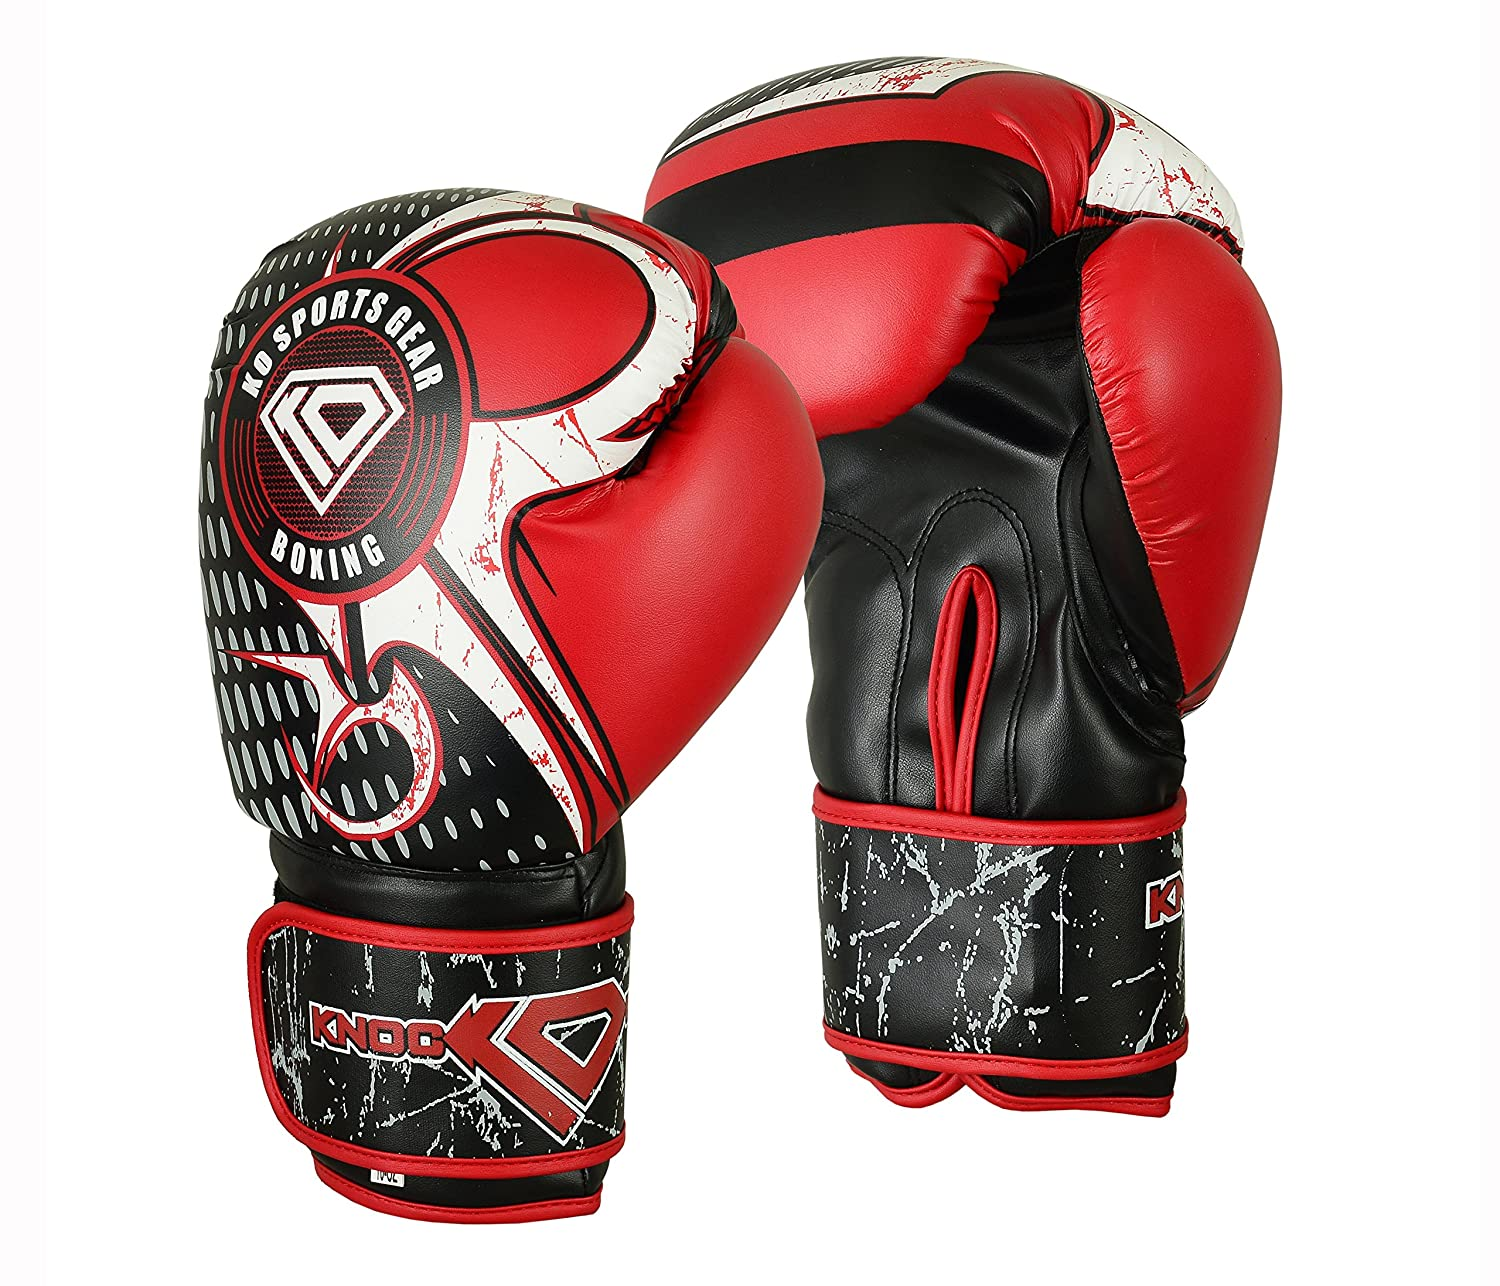 RED Training Gloves Kickboxing Karate Boxing Bag Mitts LOCUS Sparring MMA